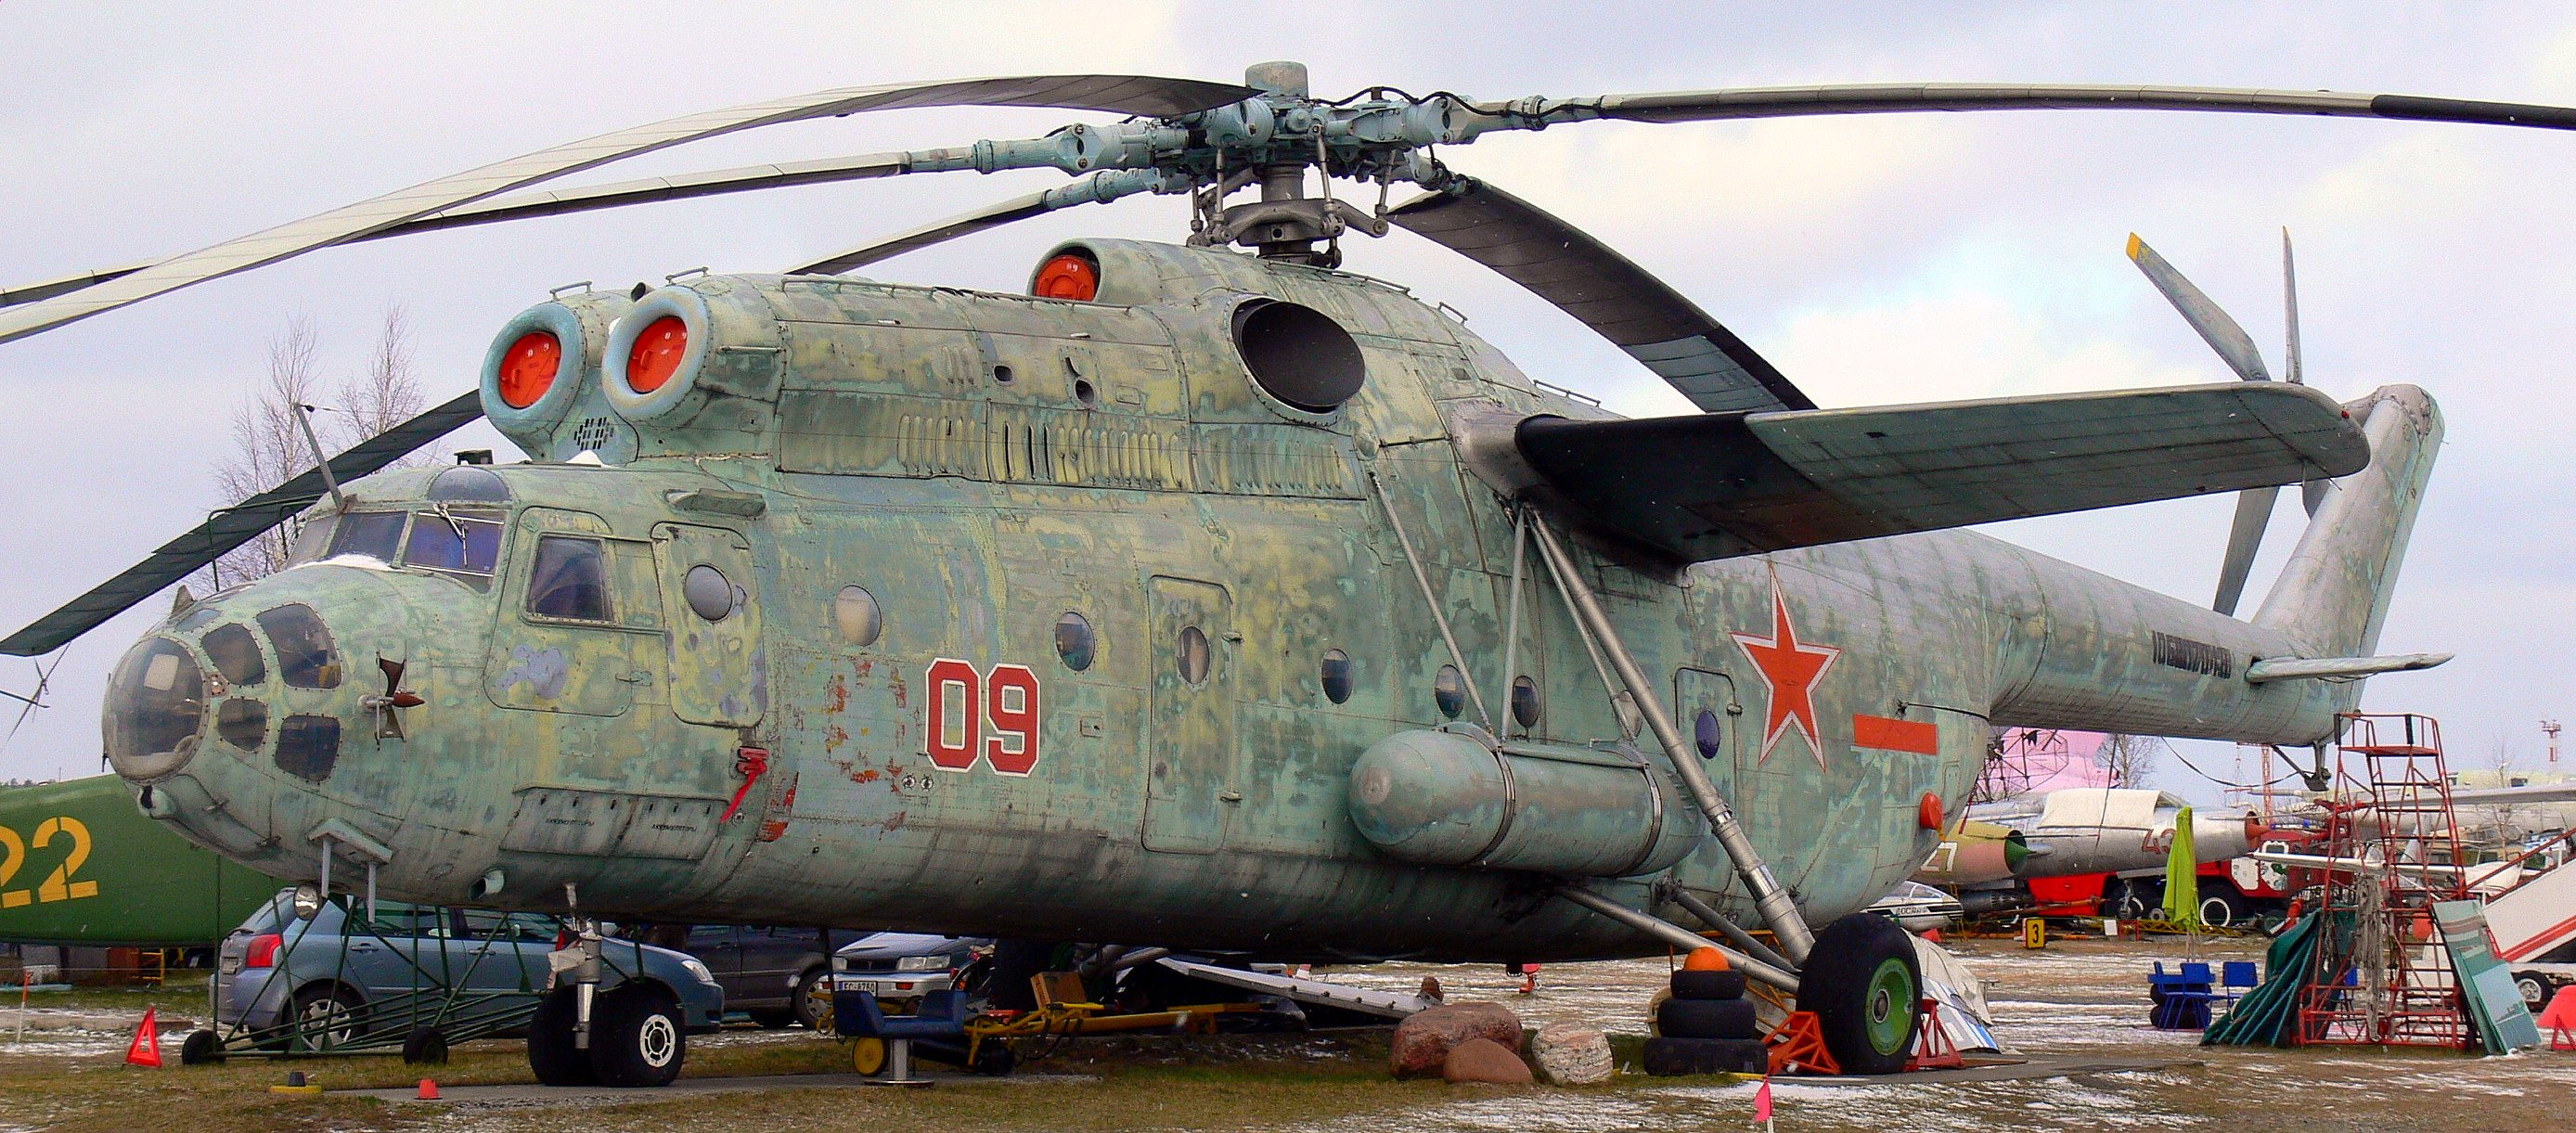 chernobyl helicopter graveyard with Viewtopic on When Will The World End besides Radioactive Scrap Yard also Abandoned Helicopters Rotorcraft Graveyards besides Viewtopic in addition Tattoos 48168.